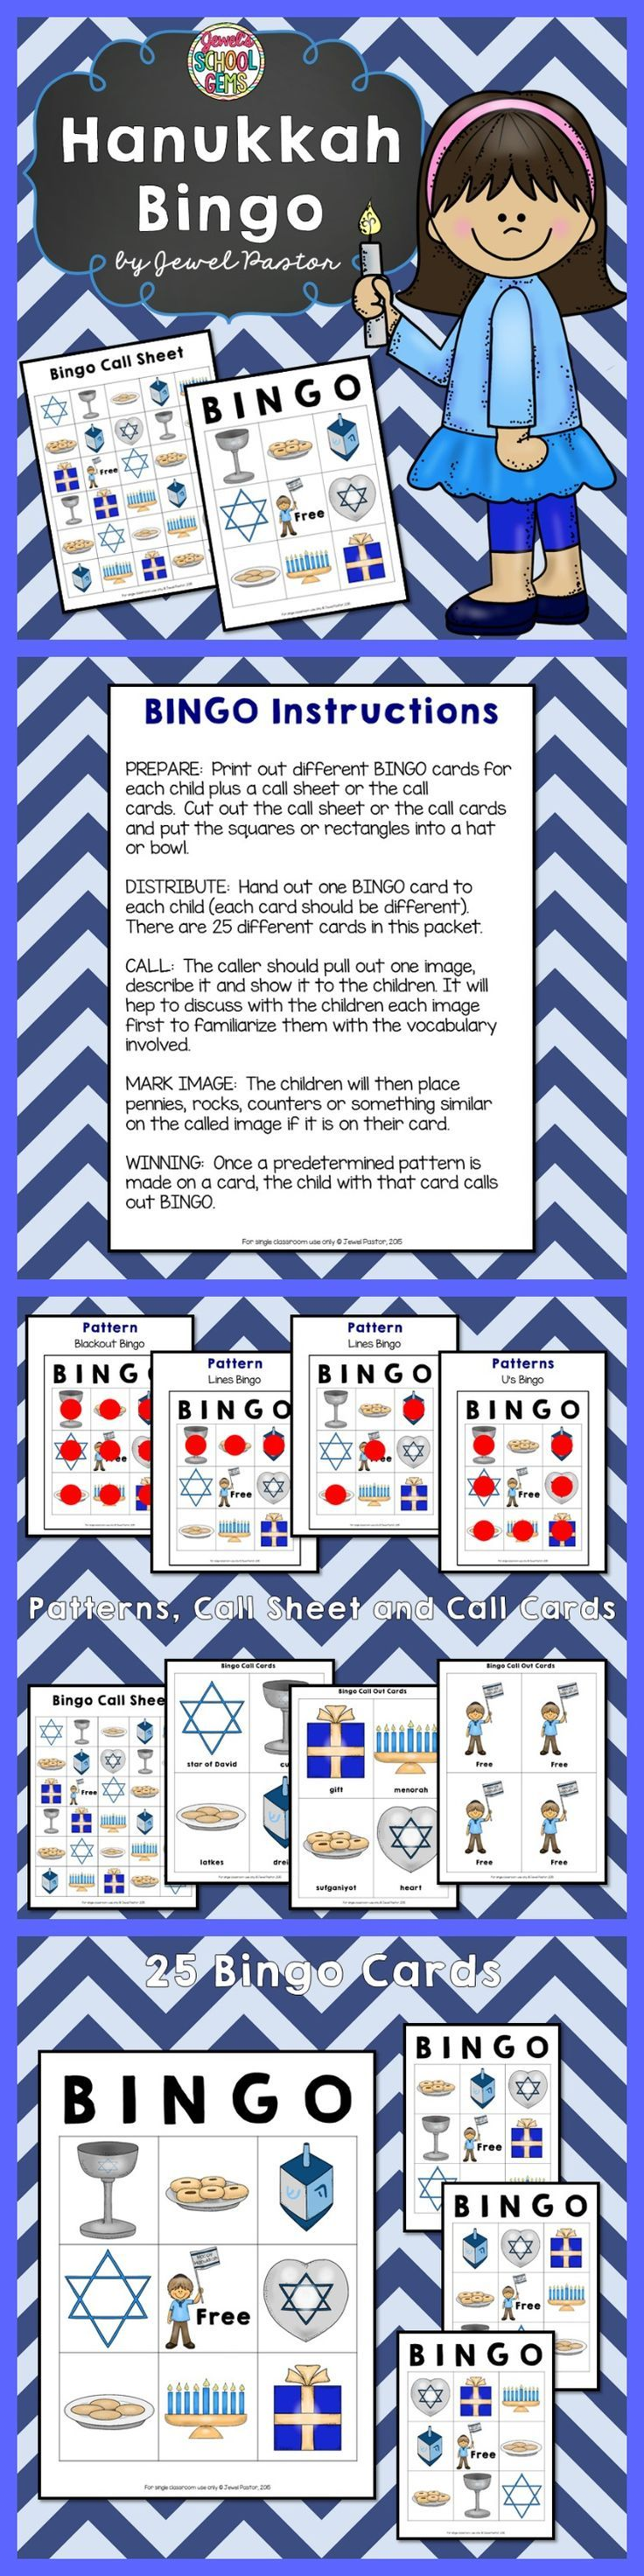 Hanukkah : Hanukkah Bingo Packet  HANUKKAH BINGO   In search of fun Hanukkah activities? Engage your students this Hanukkah Holiday with this fun Hanukkah Bingo! This packet contains instructions, patterns, bingo cards, a call sheet and call cards. See the Preview to have an idea of what is inside this Hanukkah packet.